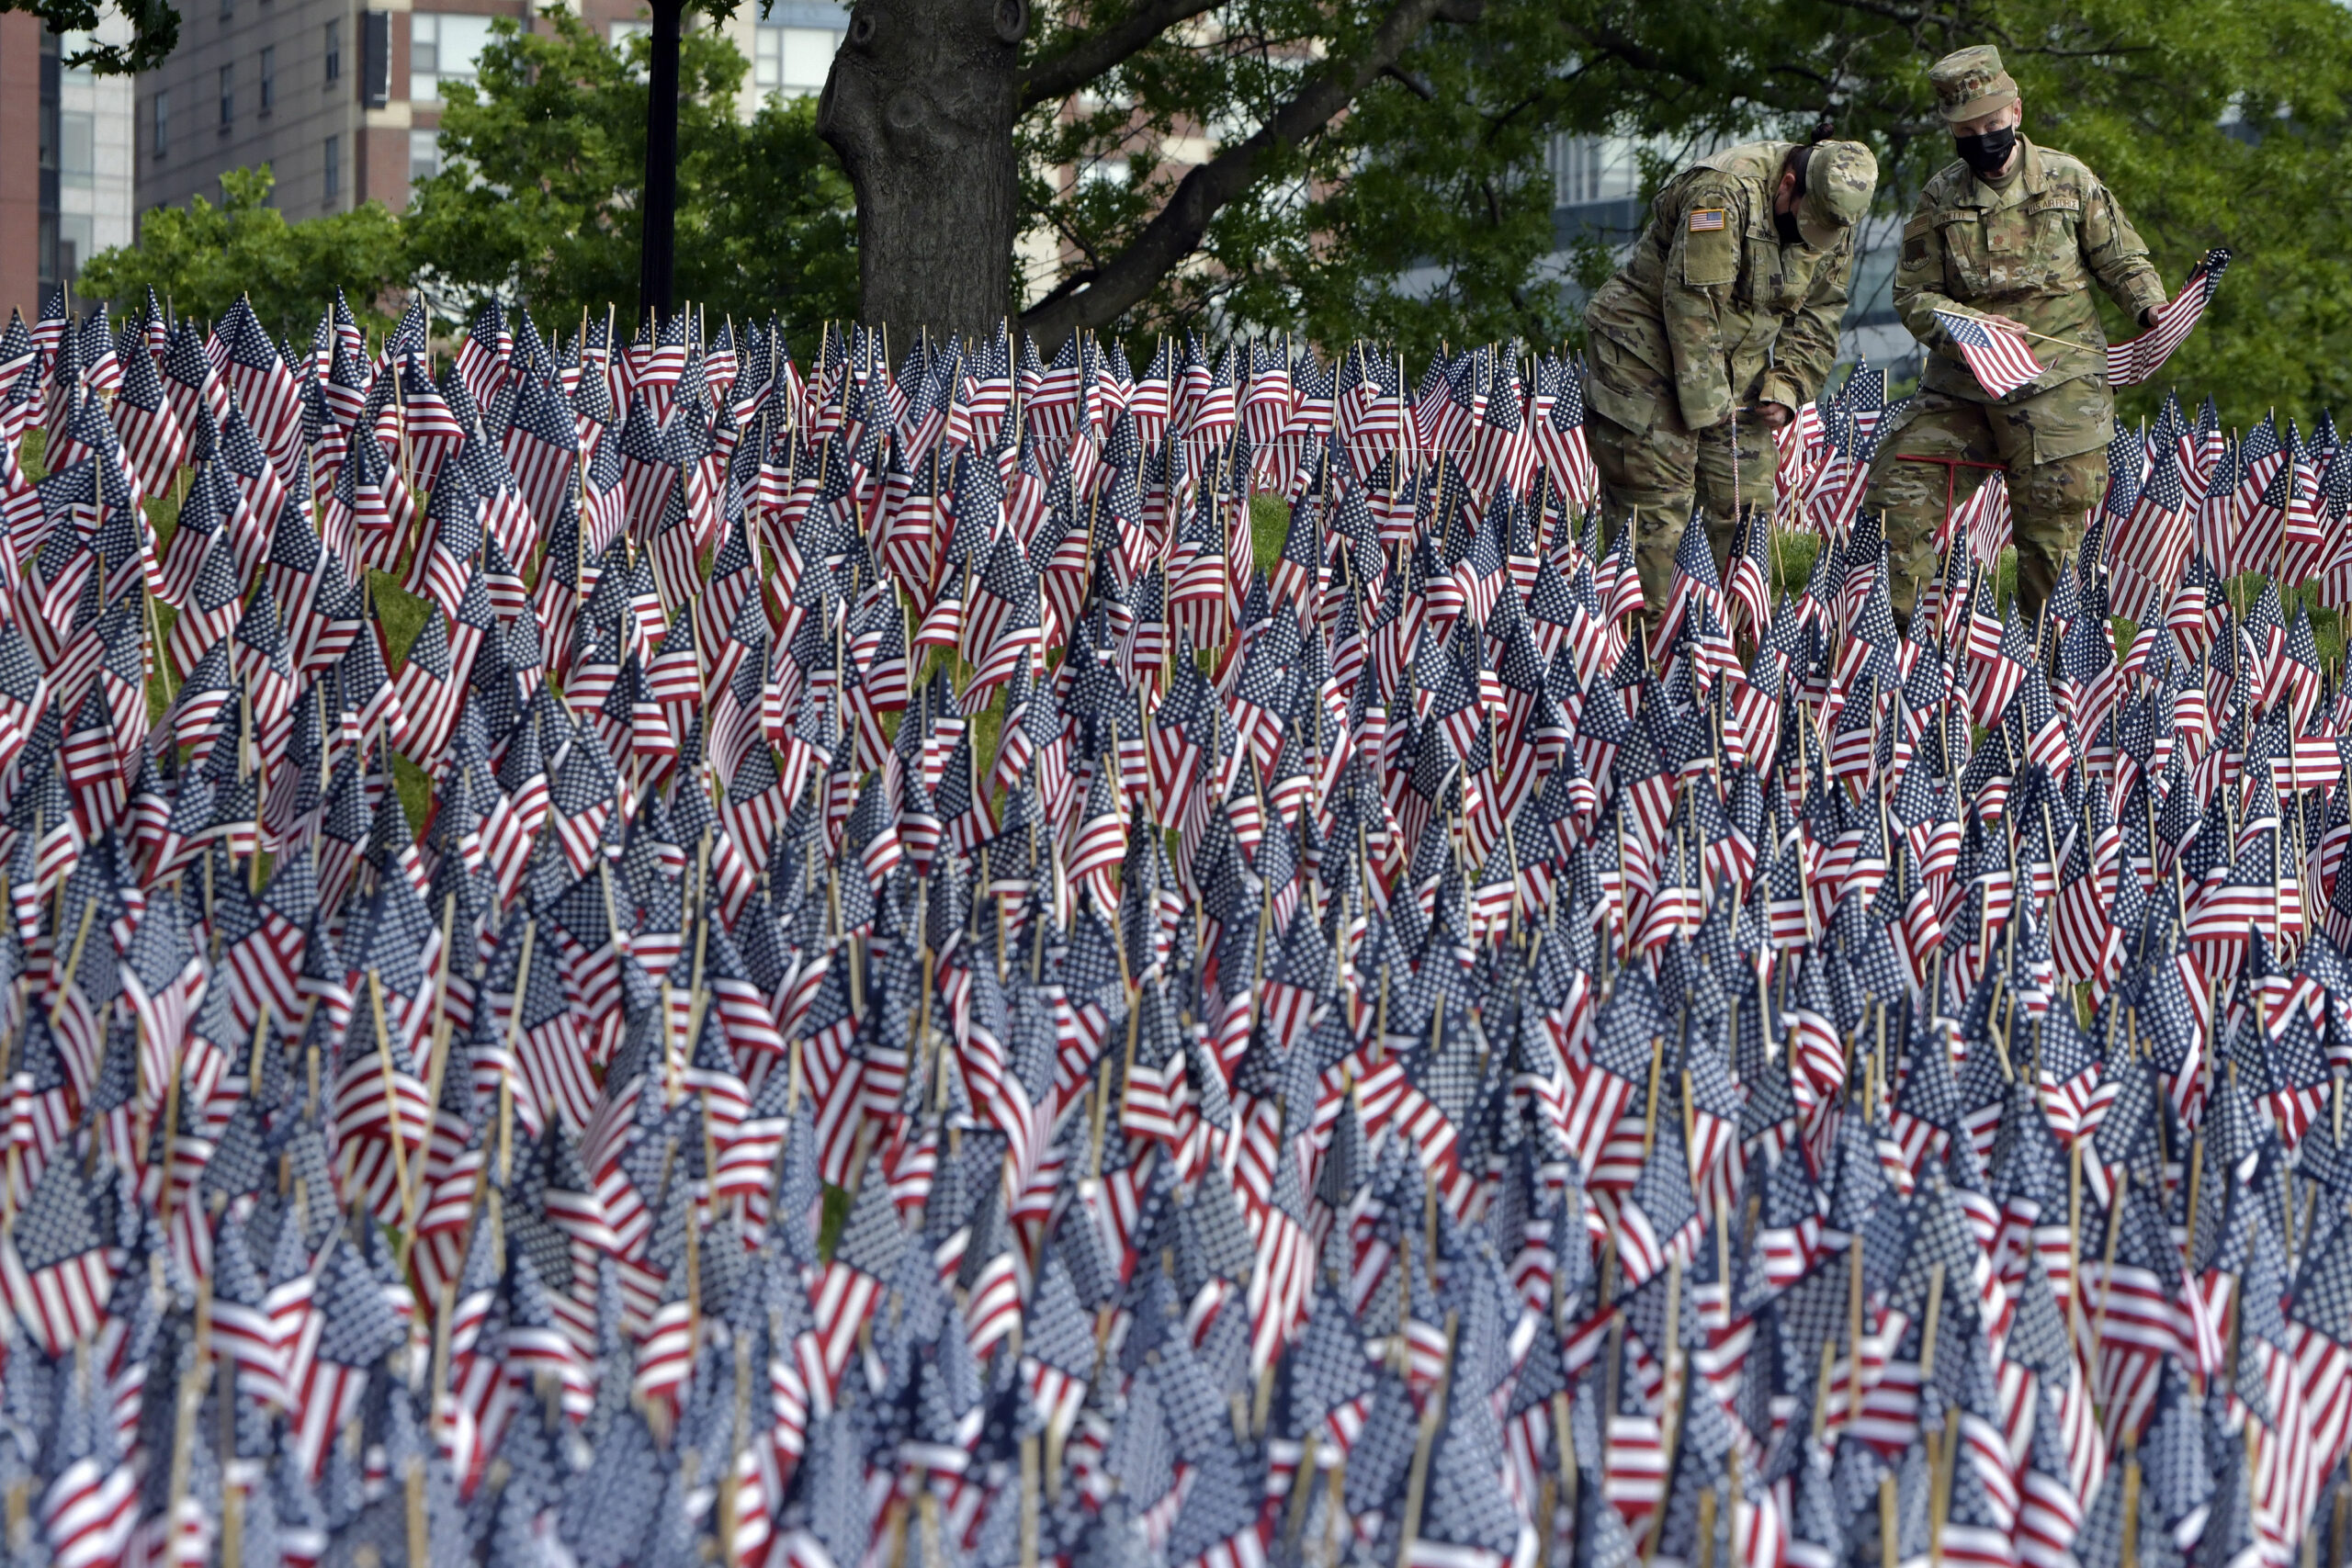 Air National Guard were among those planting American flags on Boston Common Wednesday, May 26, 2021